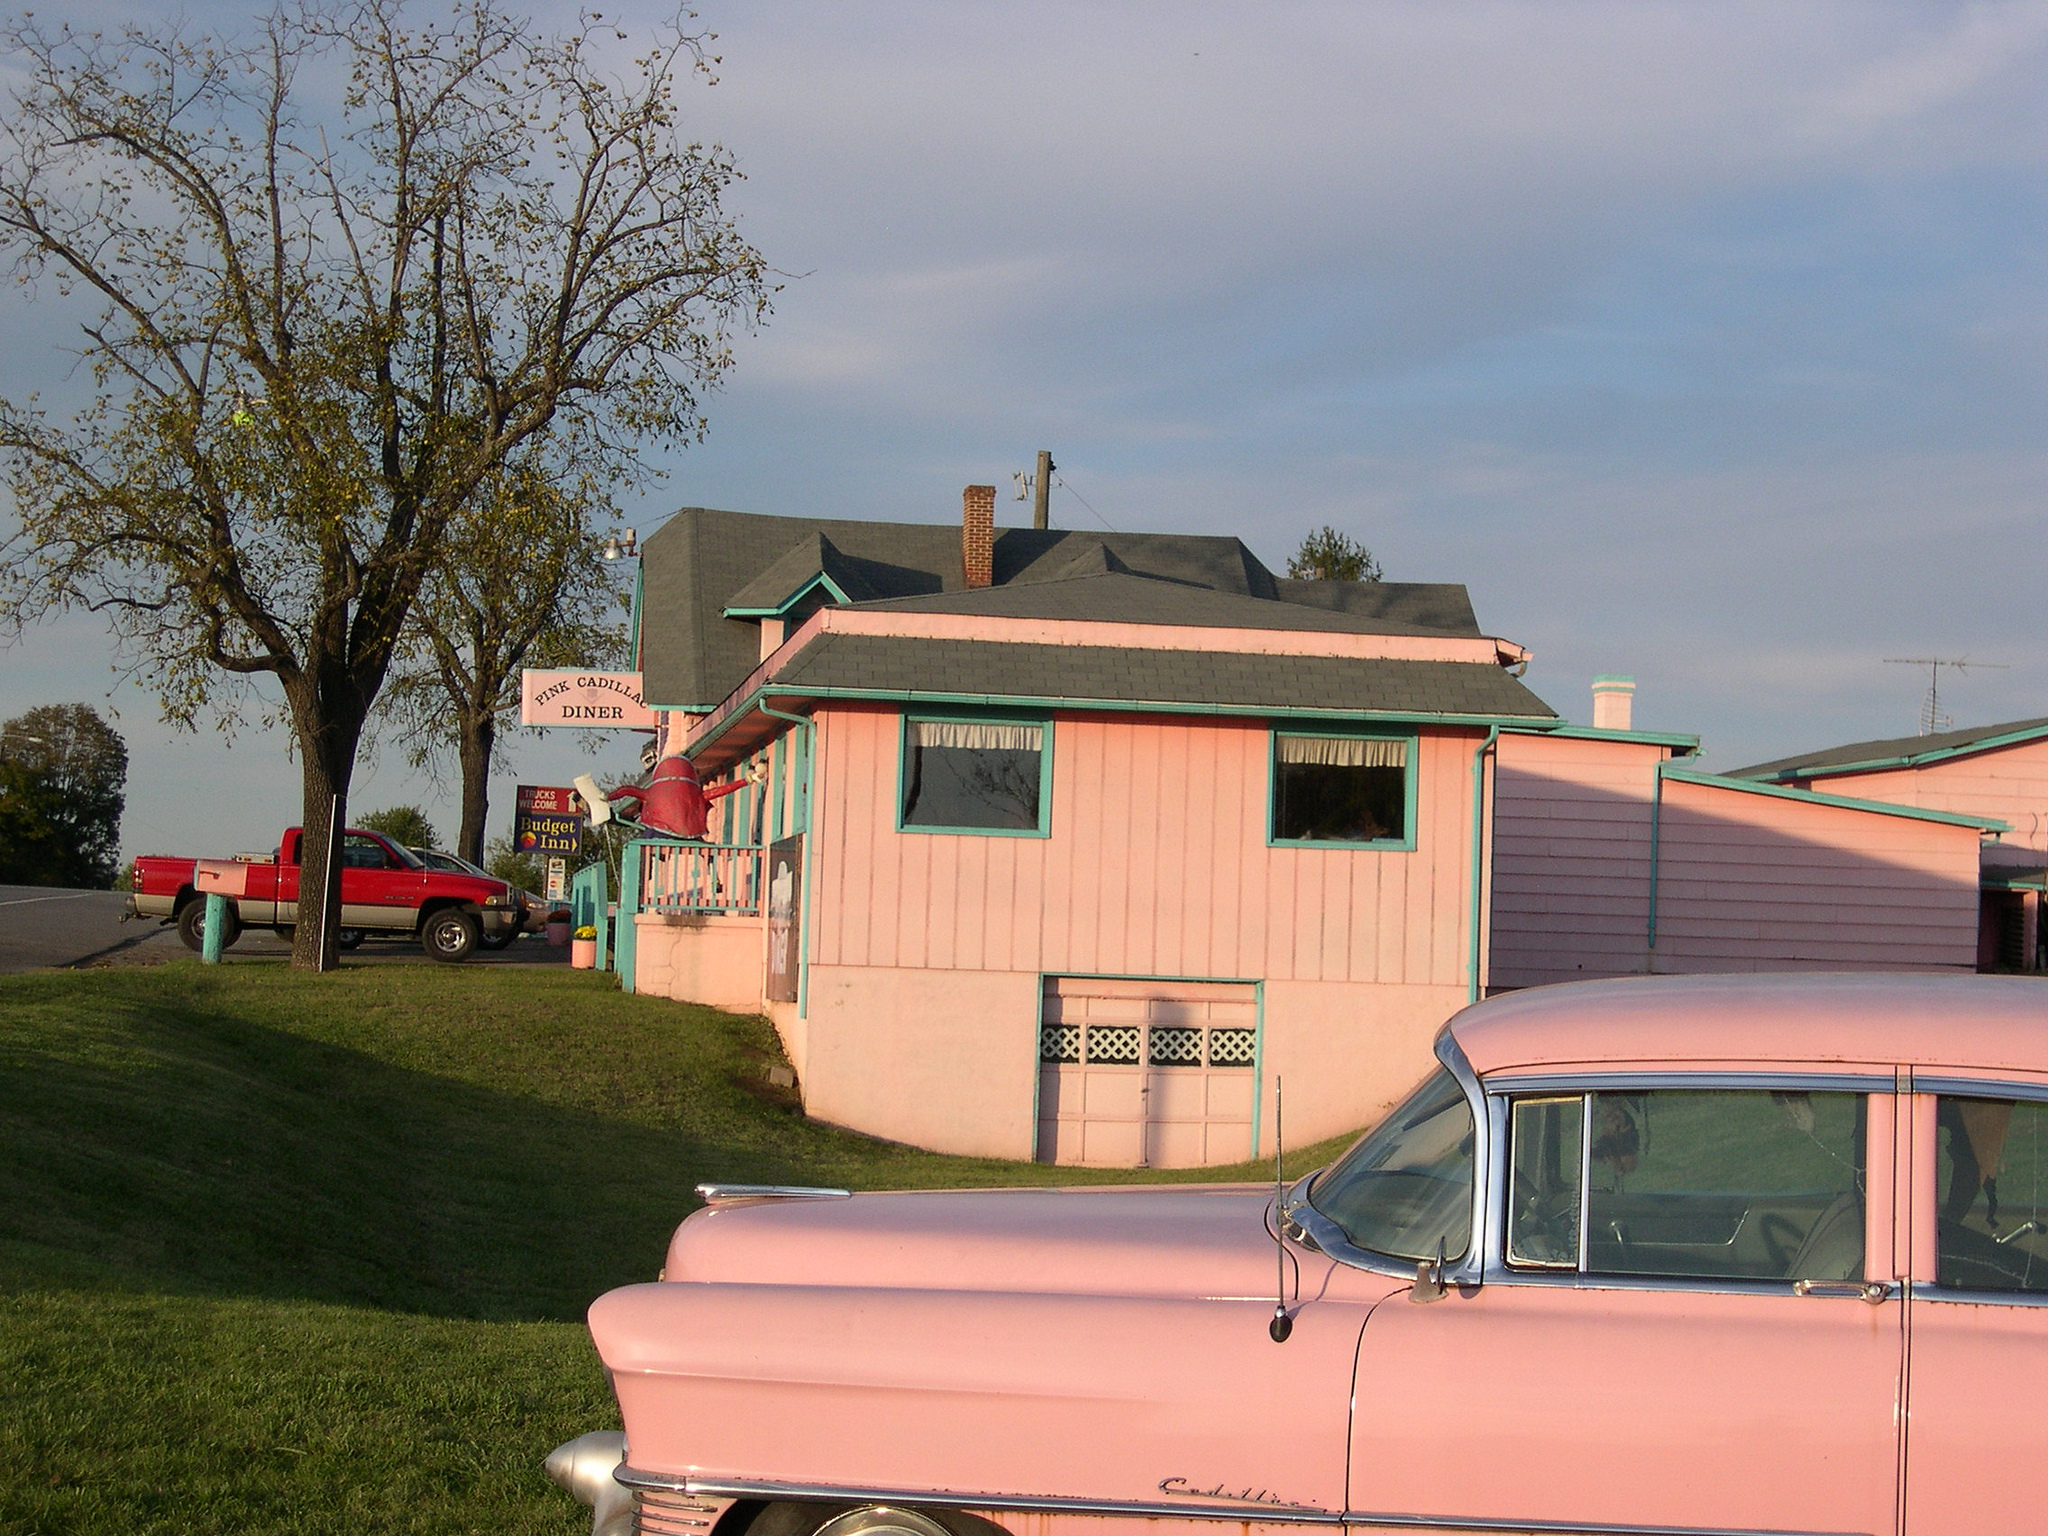 Outside of Pink Cadillac Diner